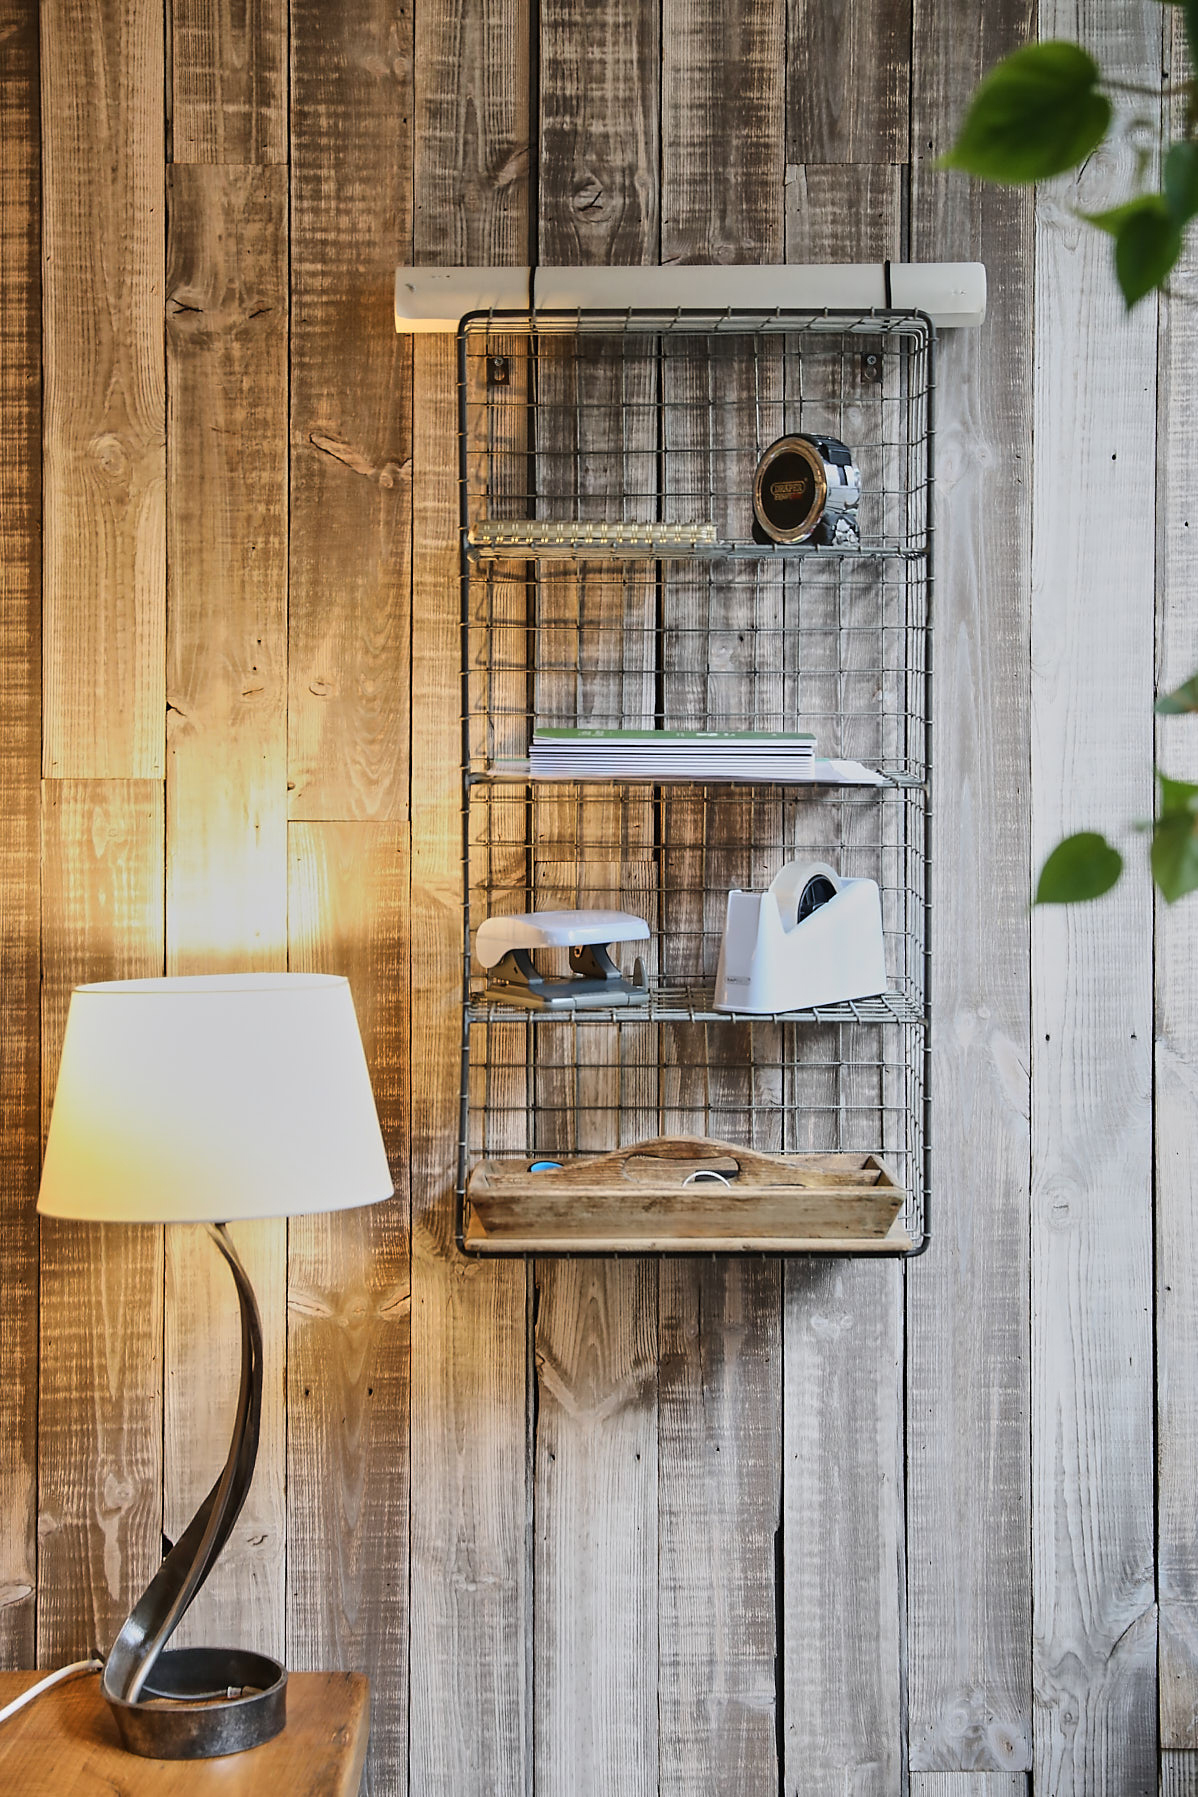 Rustic wall cladding with wire shelf